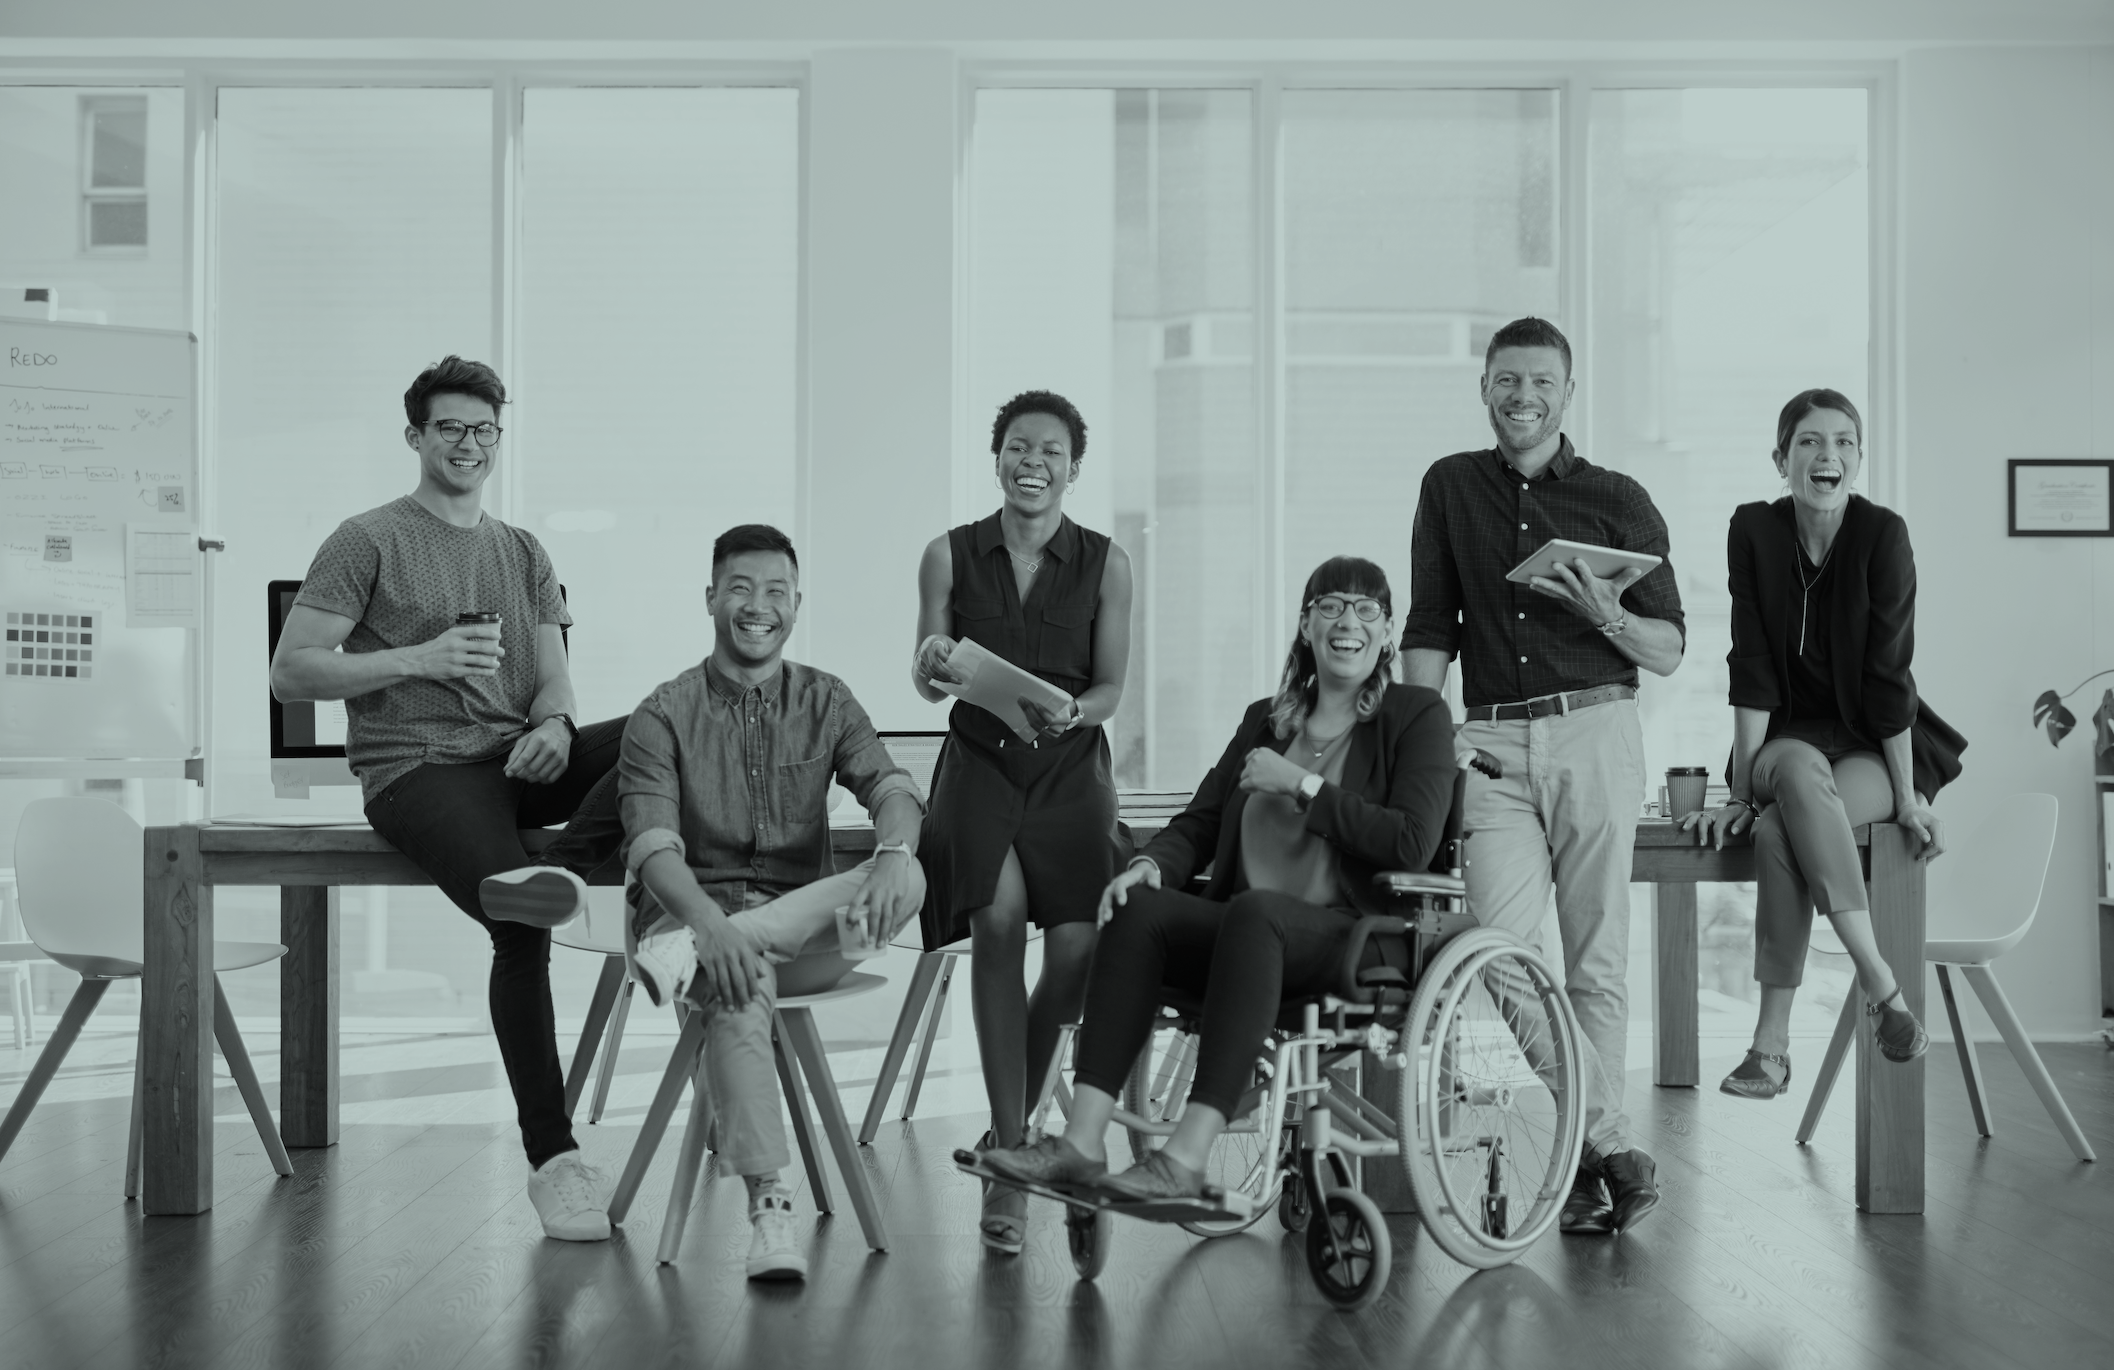 Group of coworkers with and without disabilities smiling together